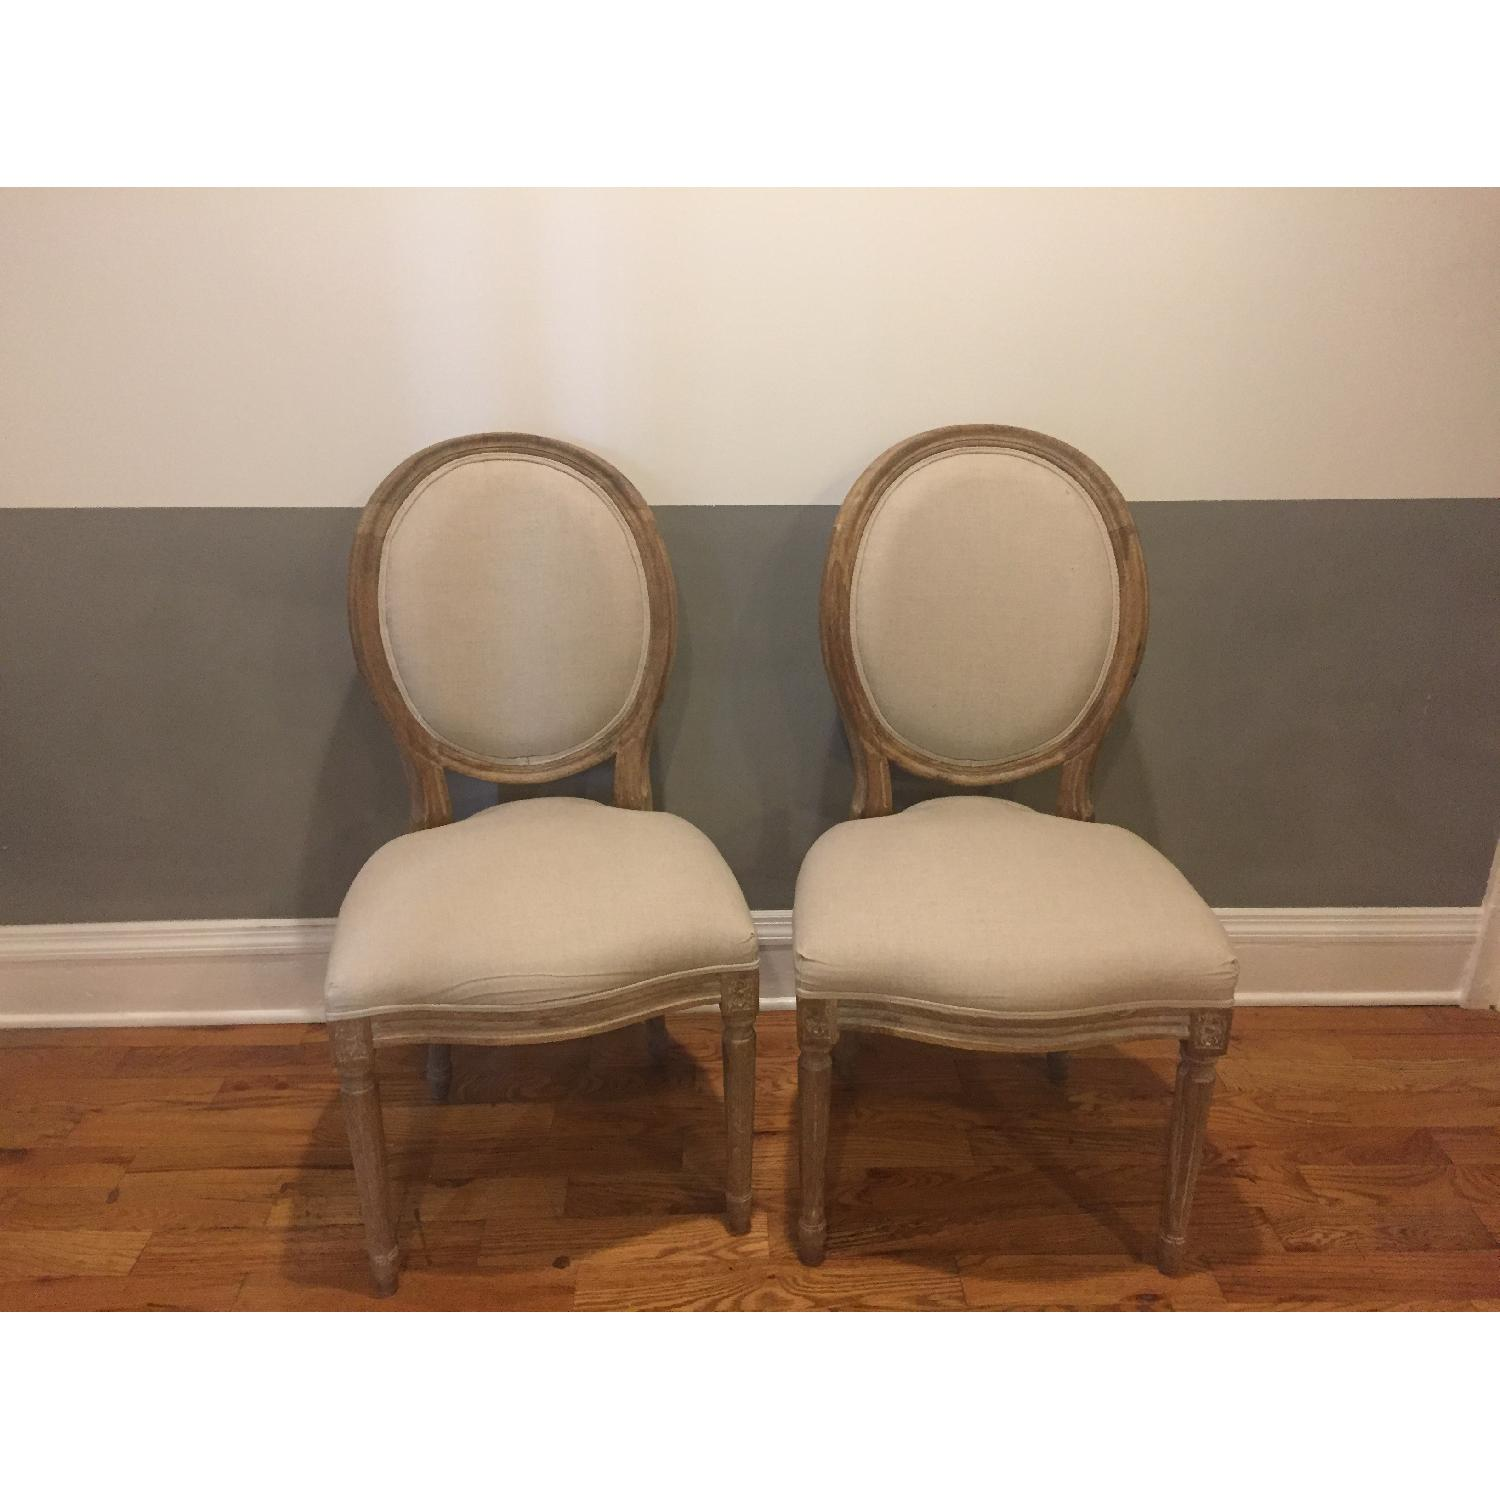 Wisteria Louis XVI Dining Chairs - image-1